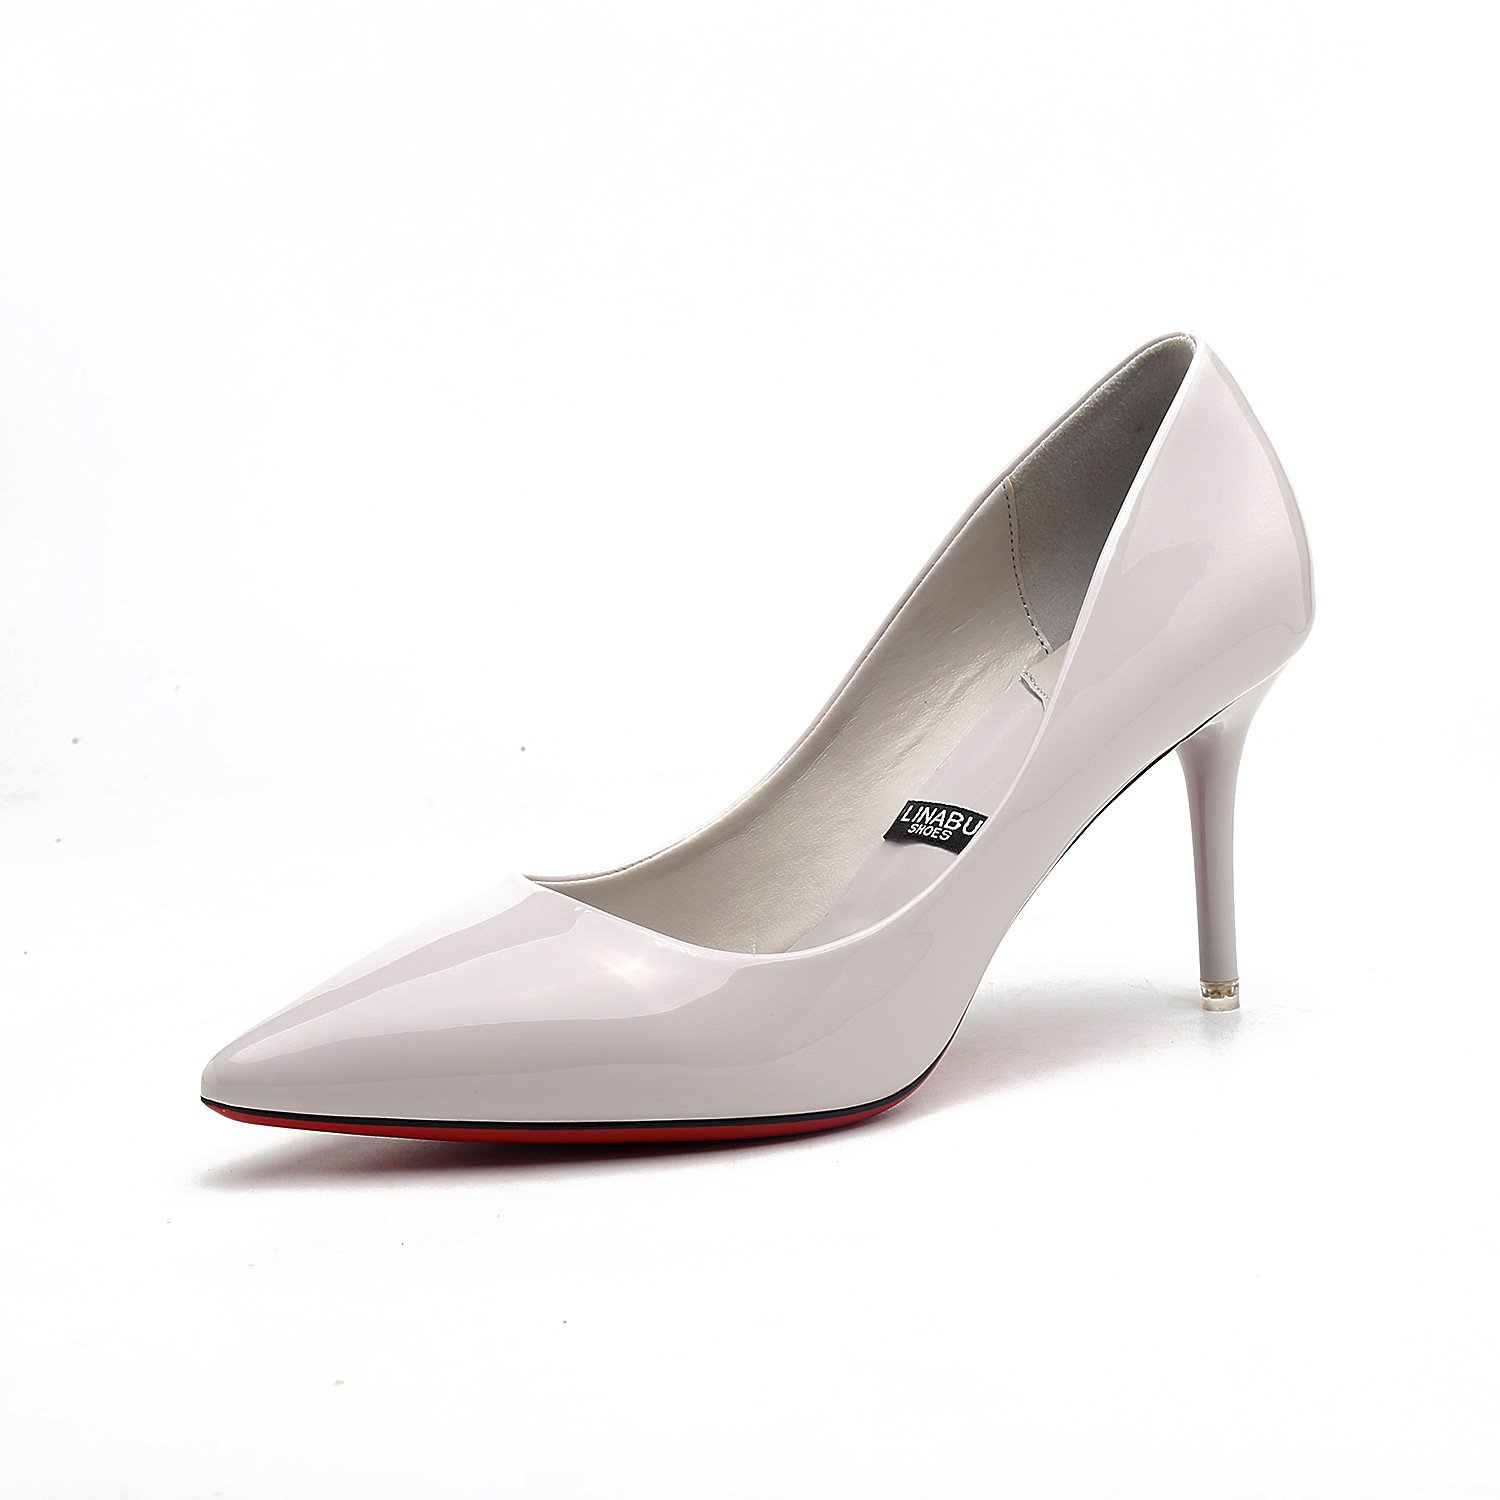 Tip of the high-heel shoes fine with women's singles shoes red wedding shoes, gray 39